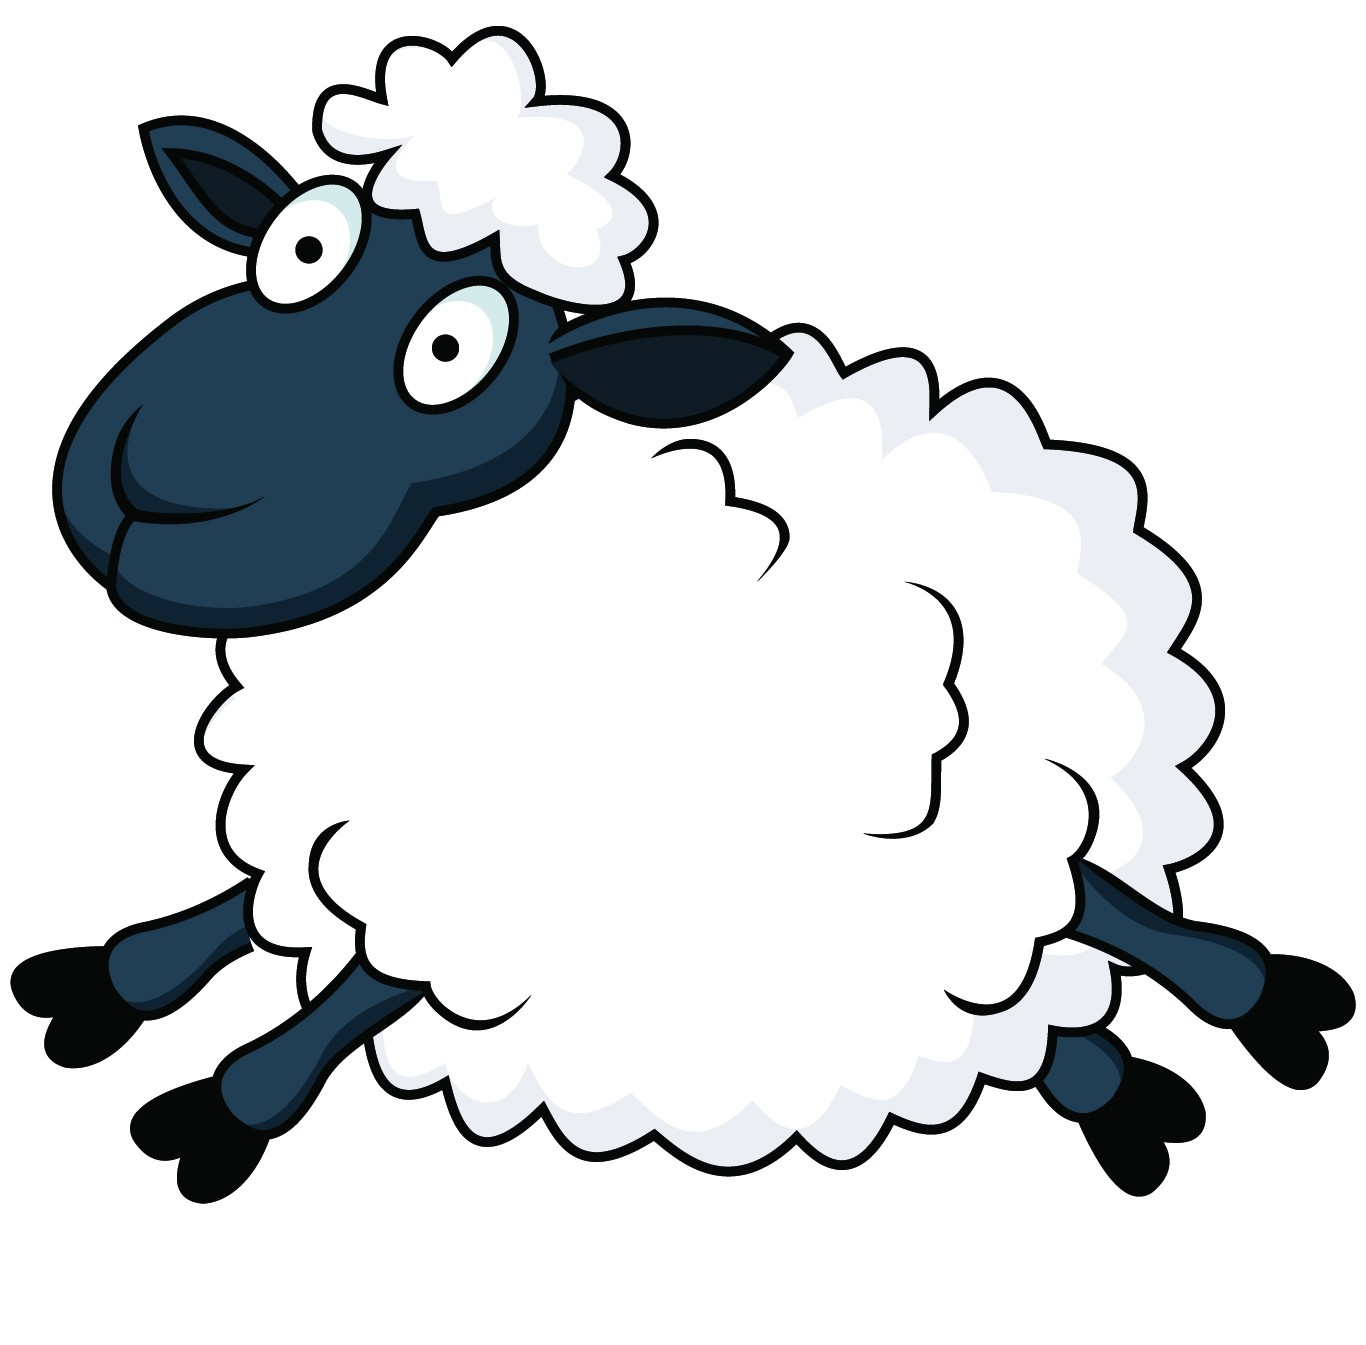 Sheep clipart cartoon #4